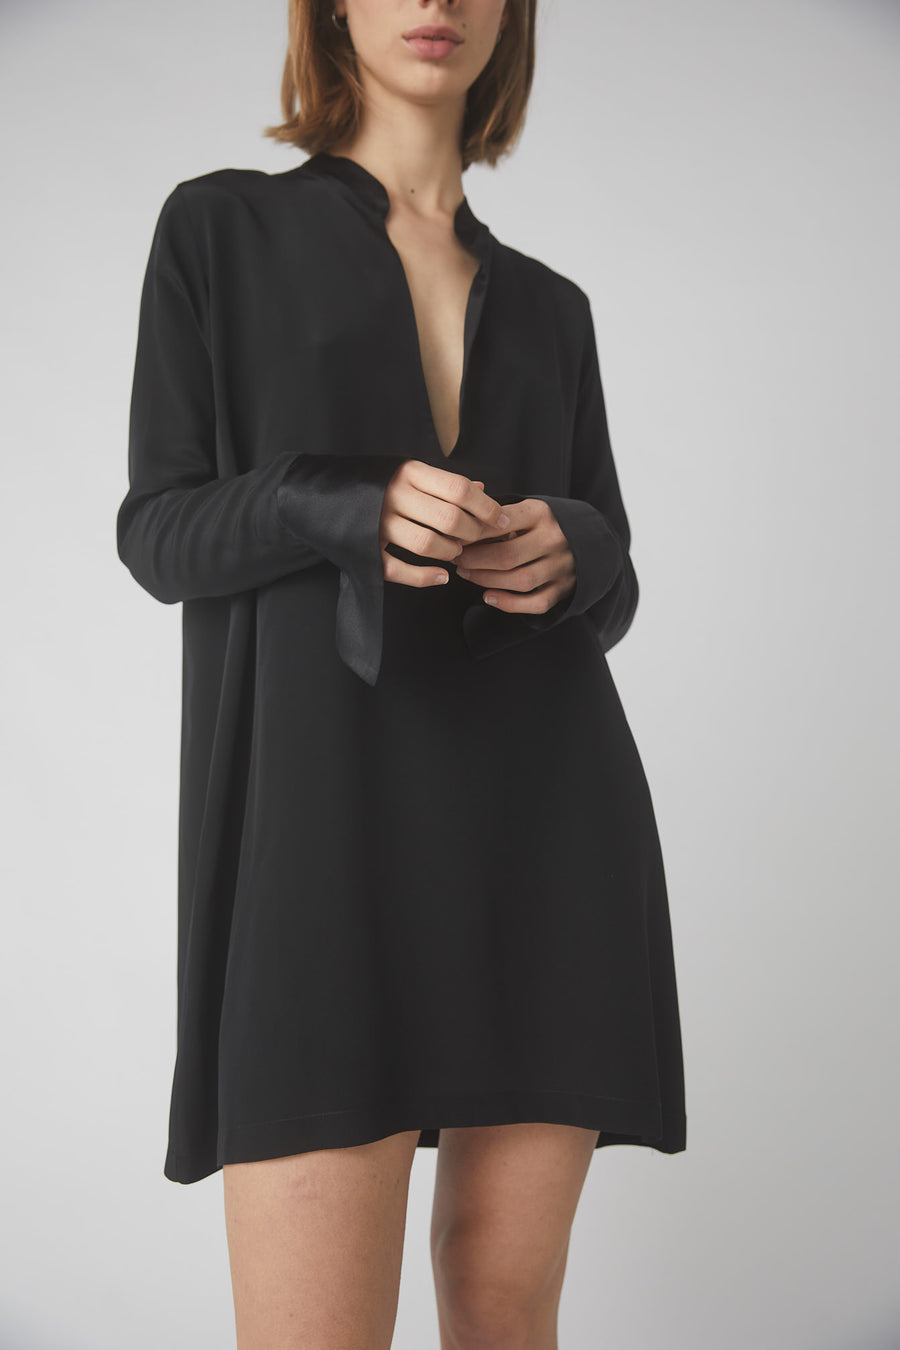 Tapered Deep V Mini Dress / Black